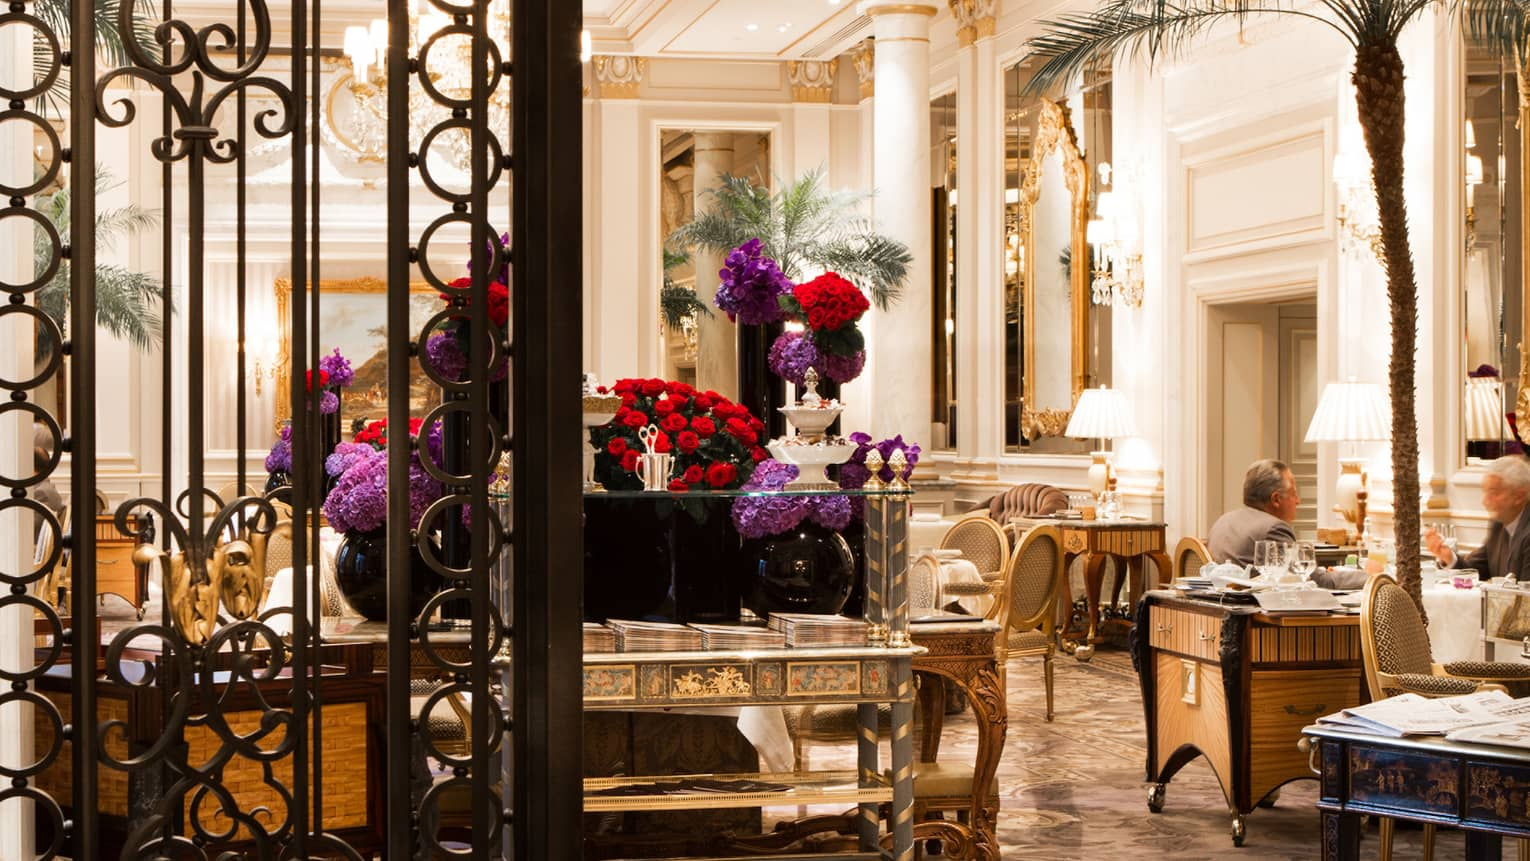 Le Cinq dining room, decorative wrought iron gate, red, purple flowers on gold tables